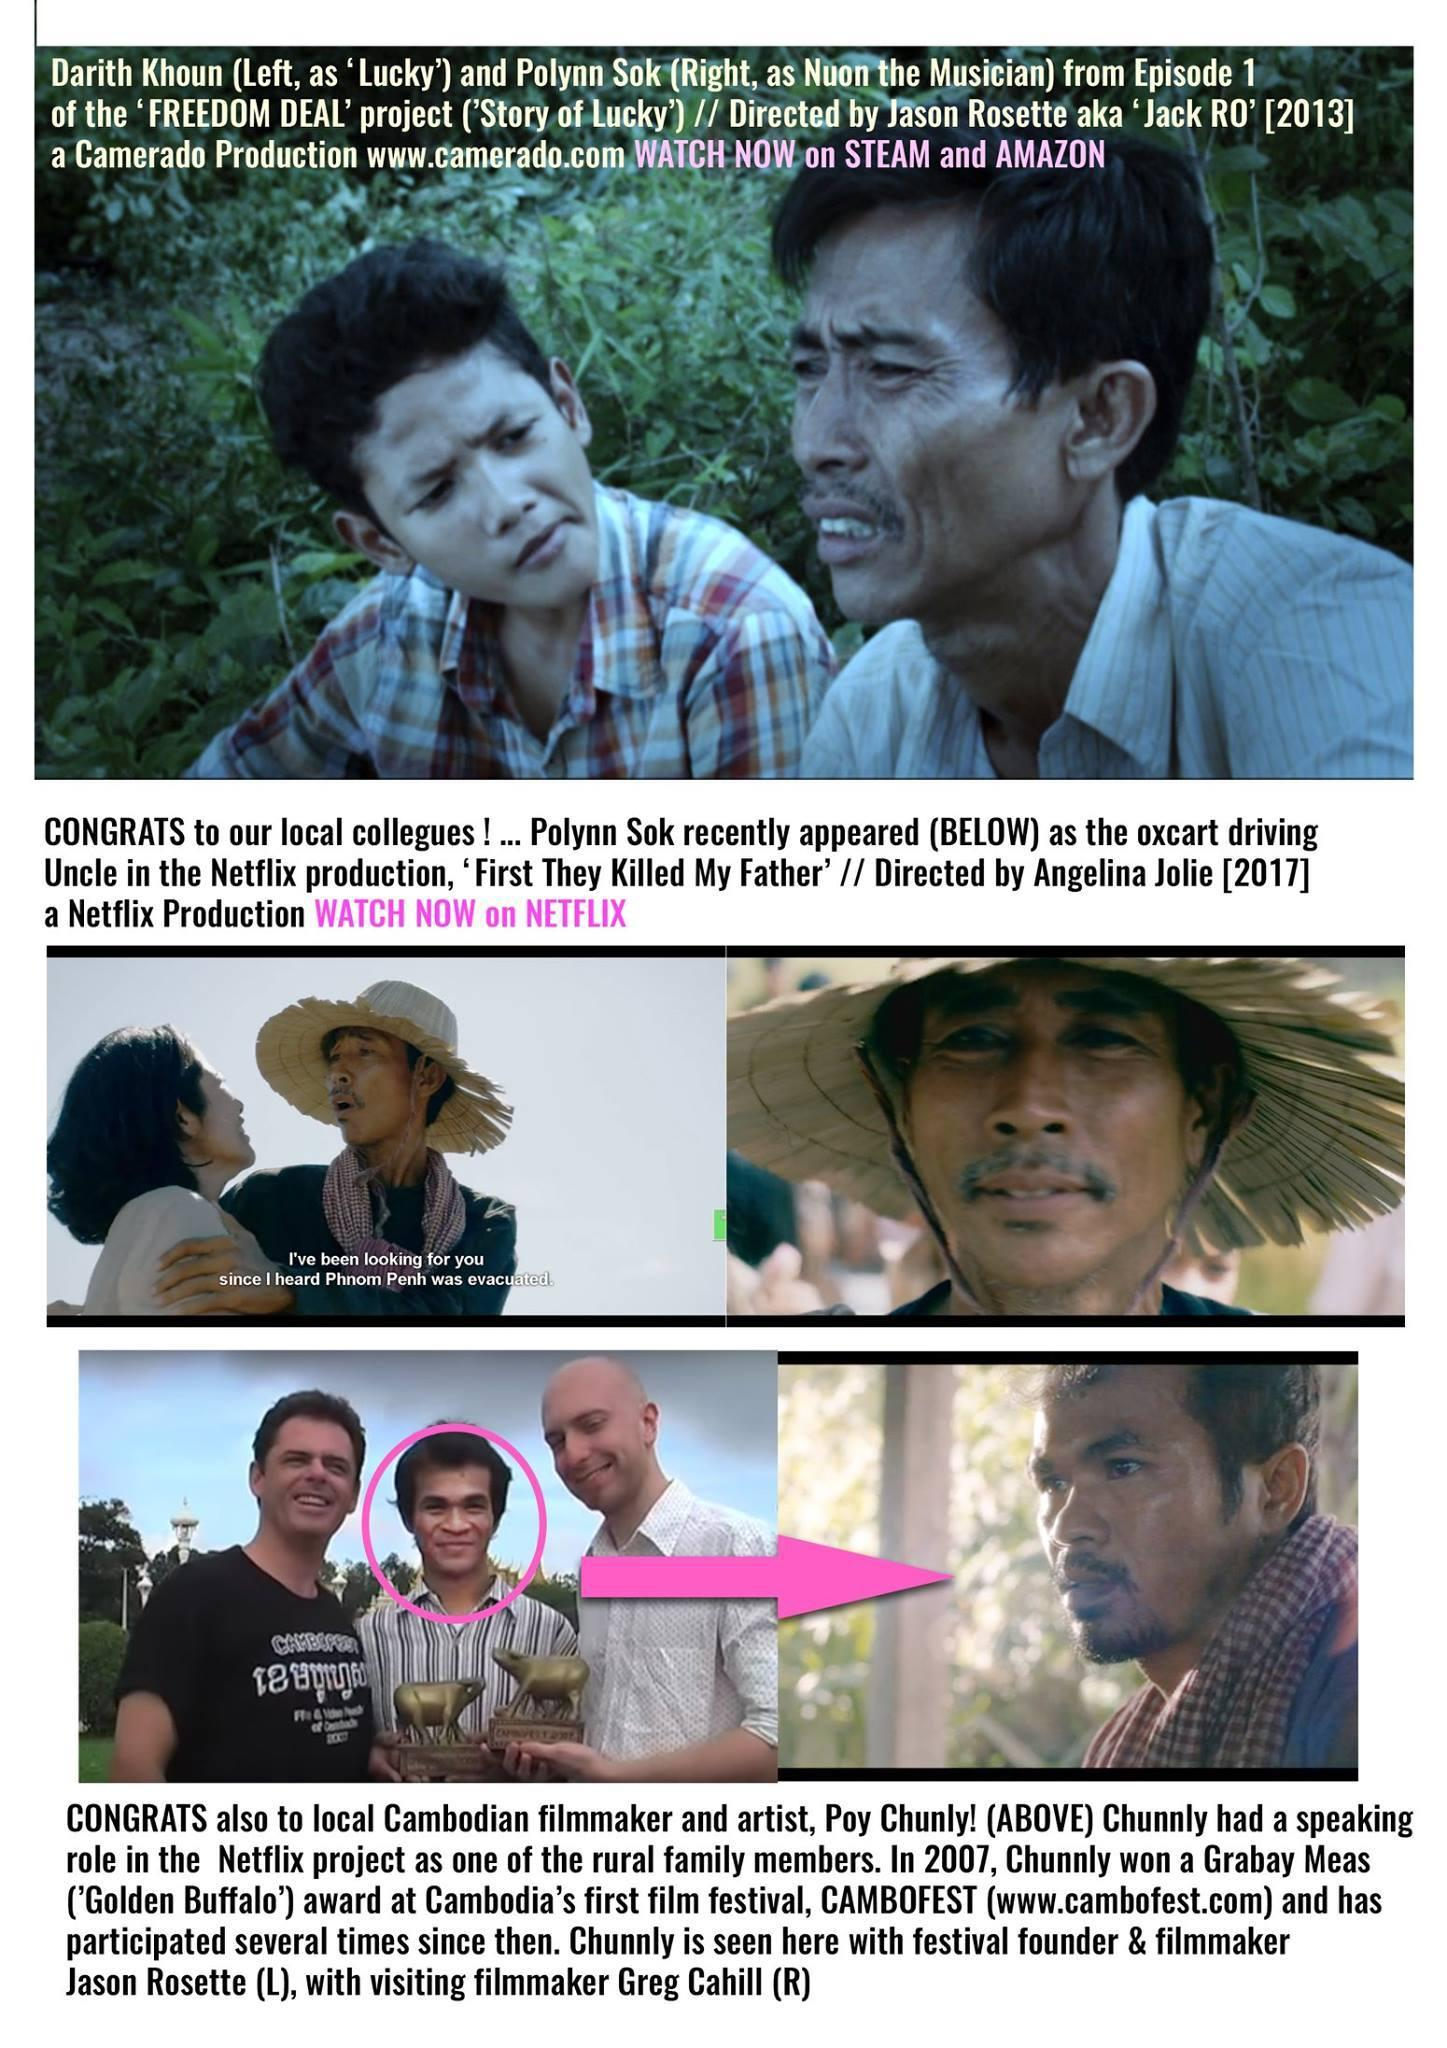 'Freedom Deal' Cambodian actor makes his mark in Netflix movie 'First they Killed my Father'